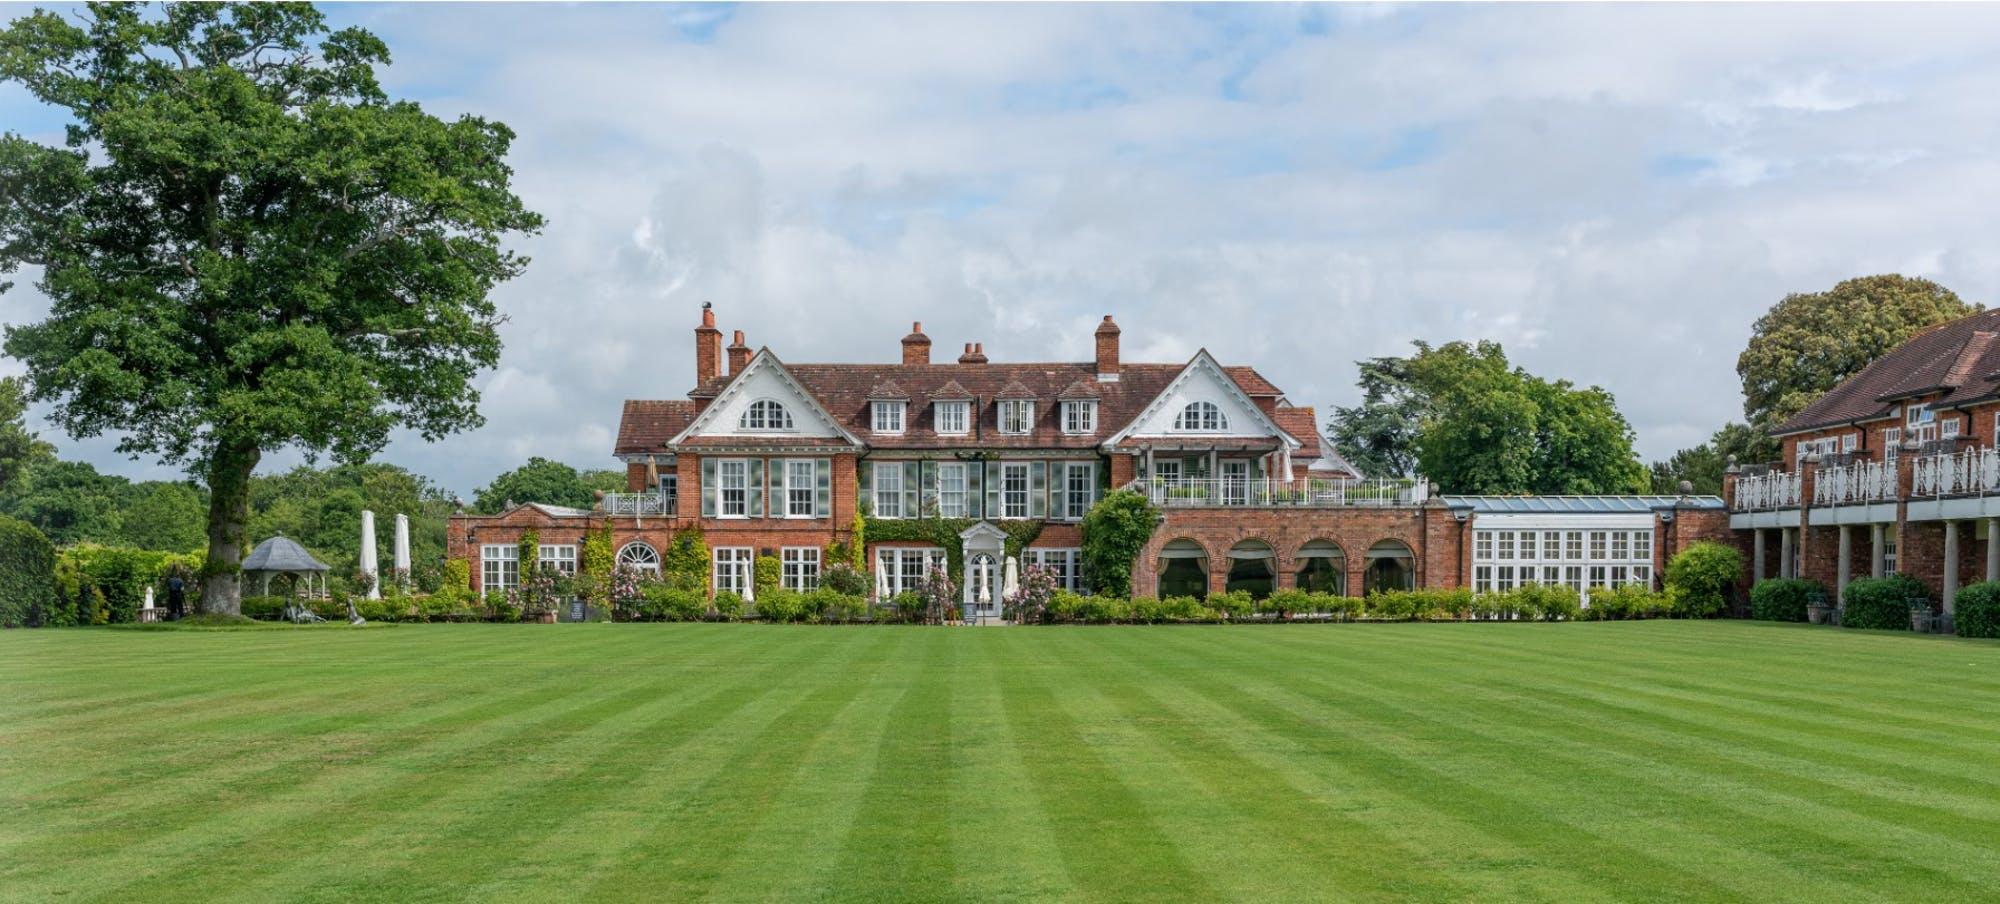 The Grand Reopening  Andrew Stembridge on Iconic Luxury Hotels' recovery